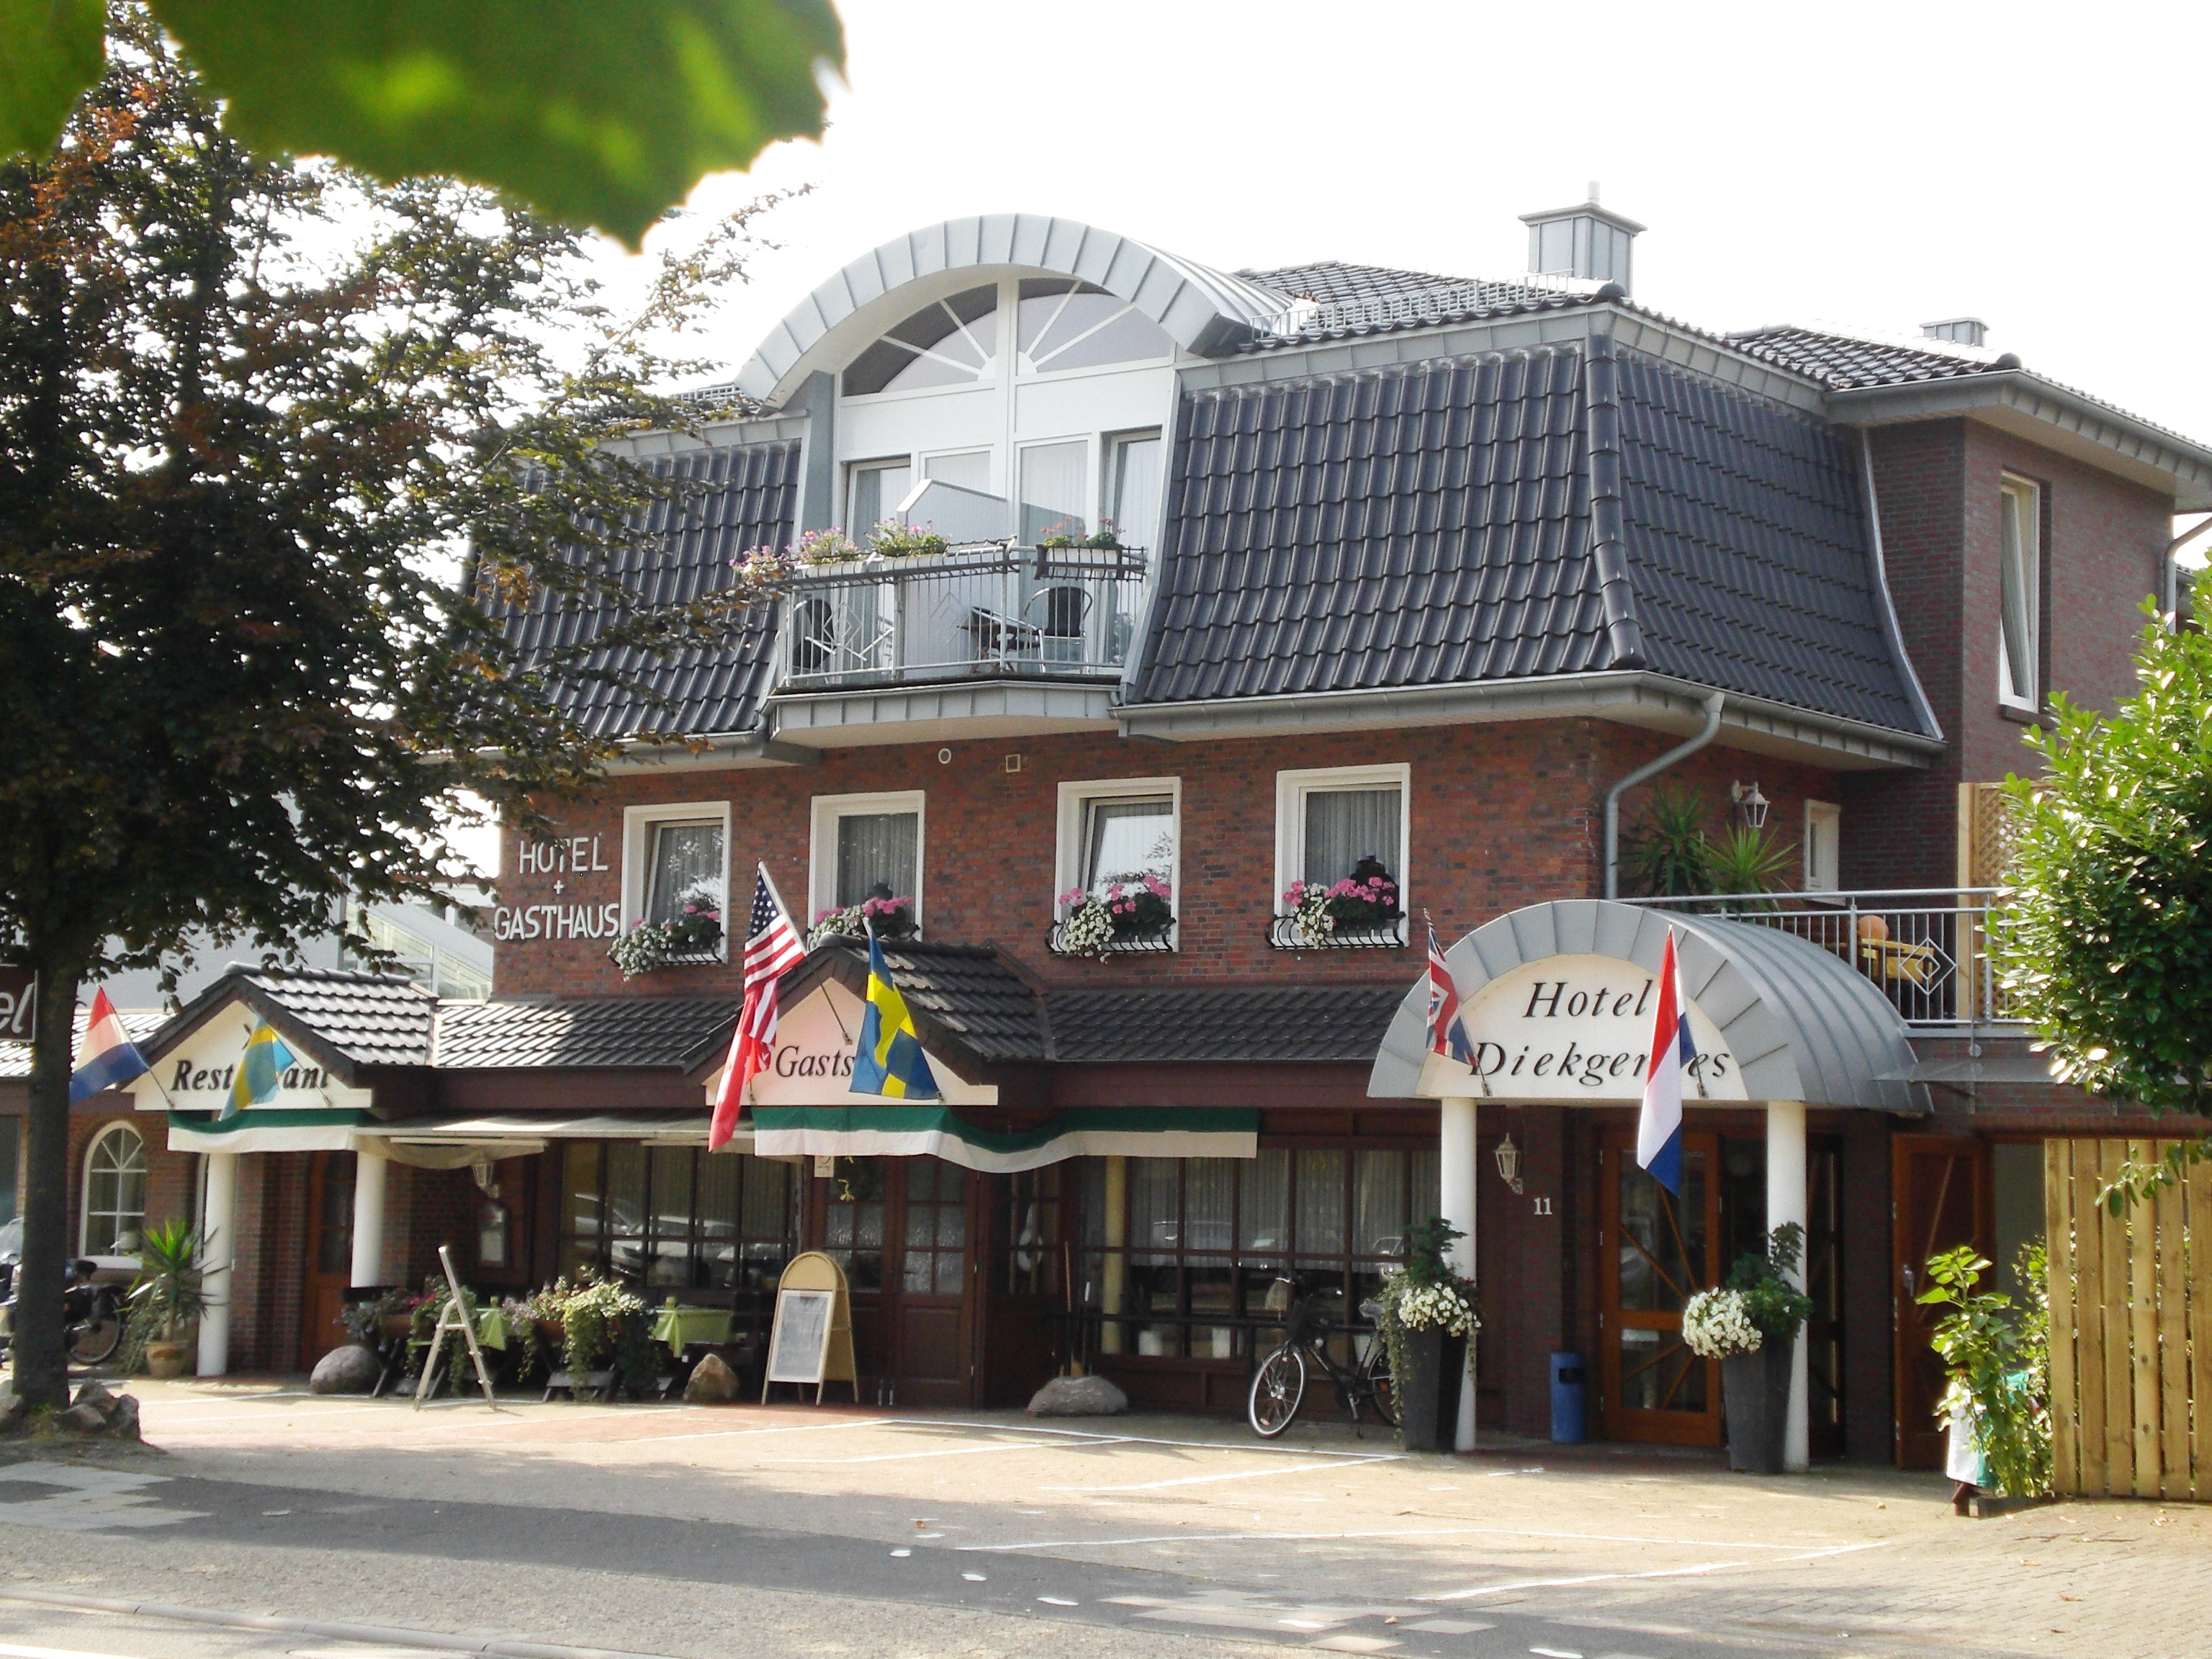 casino cloppenburg